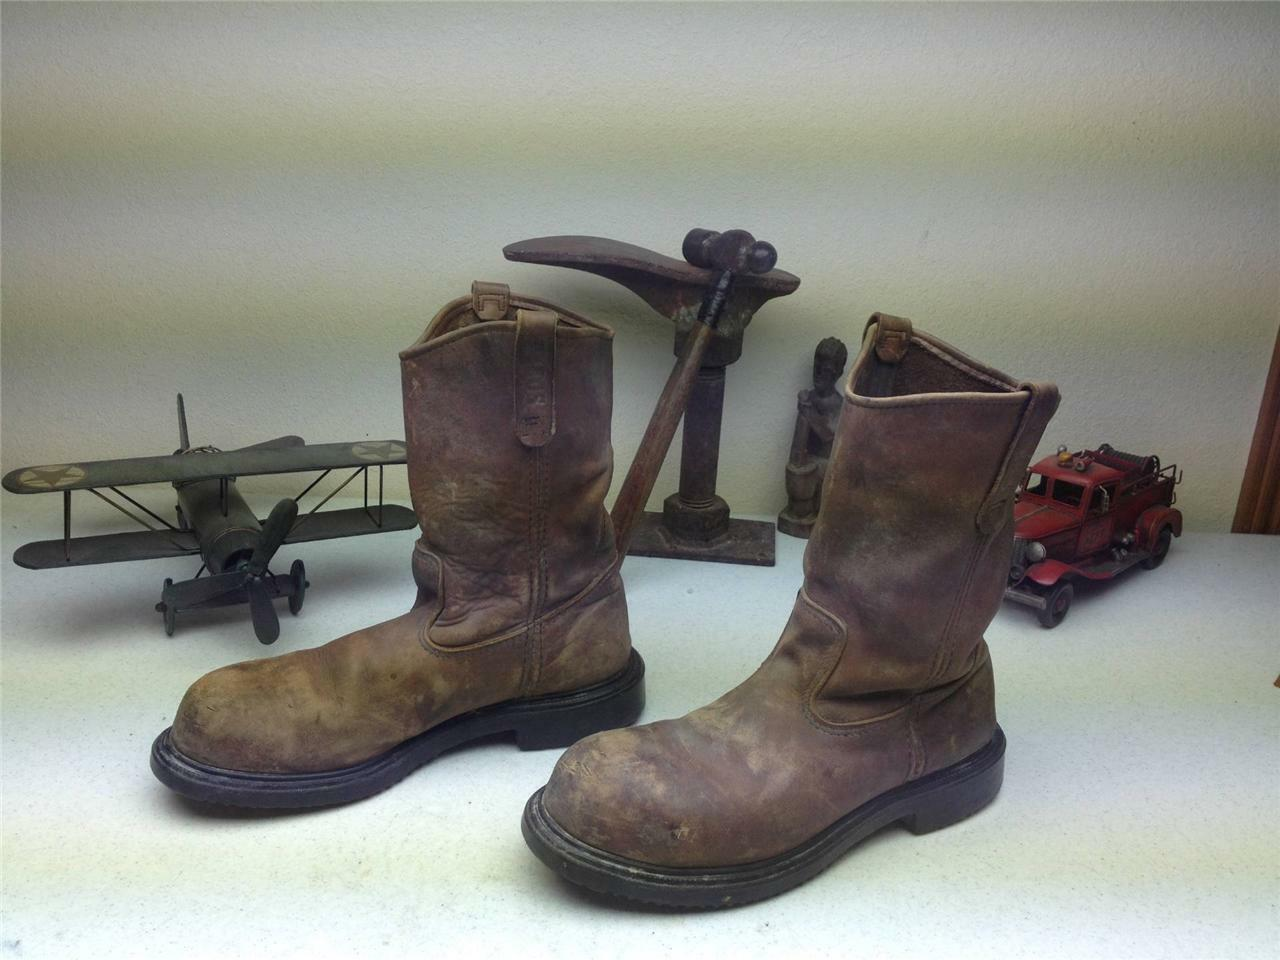 DISTRESSED USA STEEL TOE RED WING PECOS BROWN LEATHER ENGINEER WORK BOOTS 11.5 C